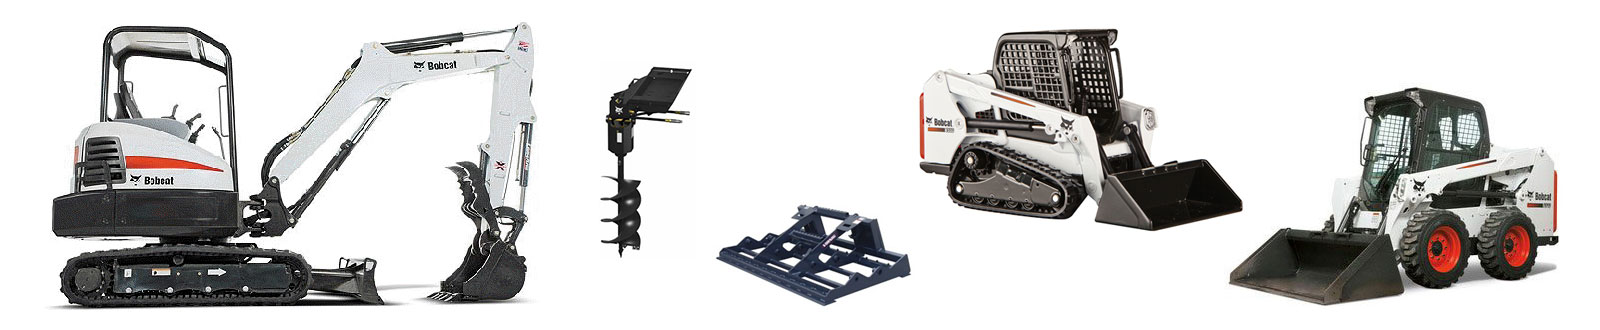 Equipment rentals in the Prior Lake & Savage MN area